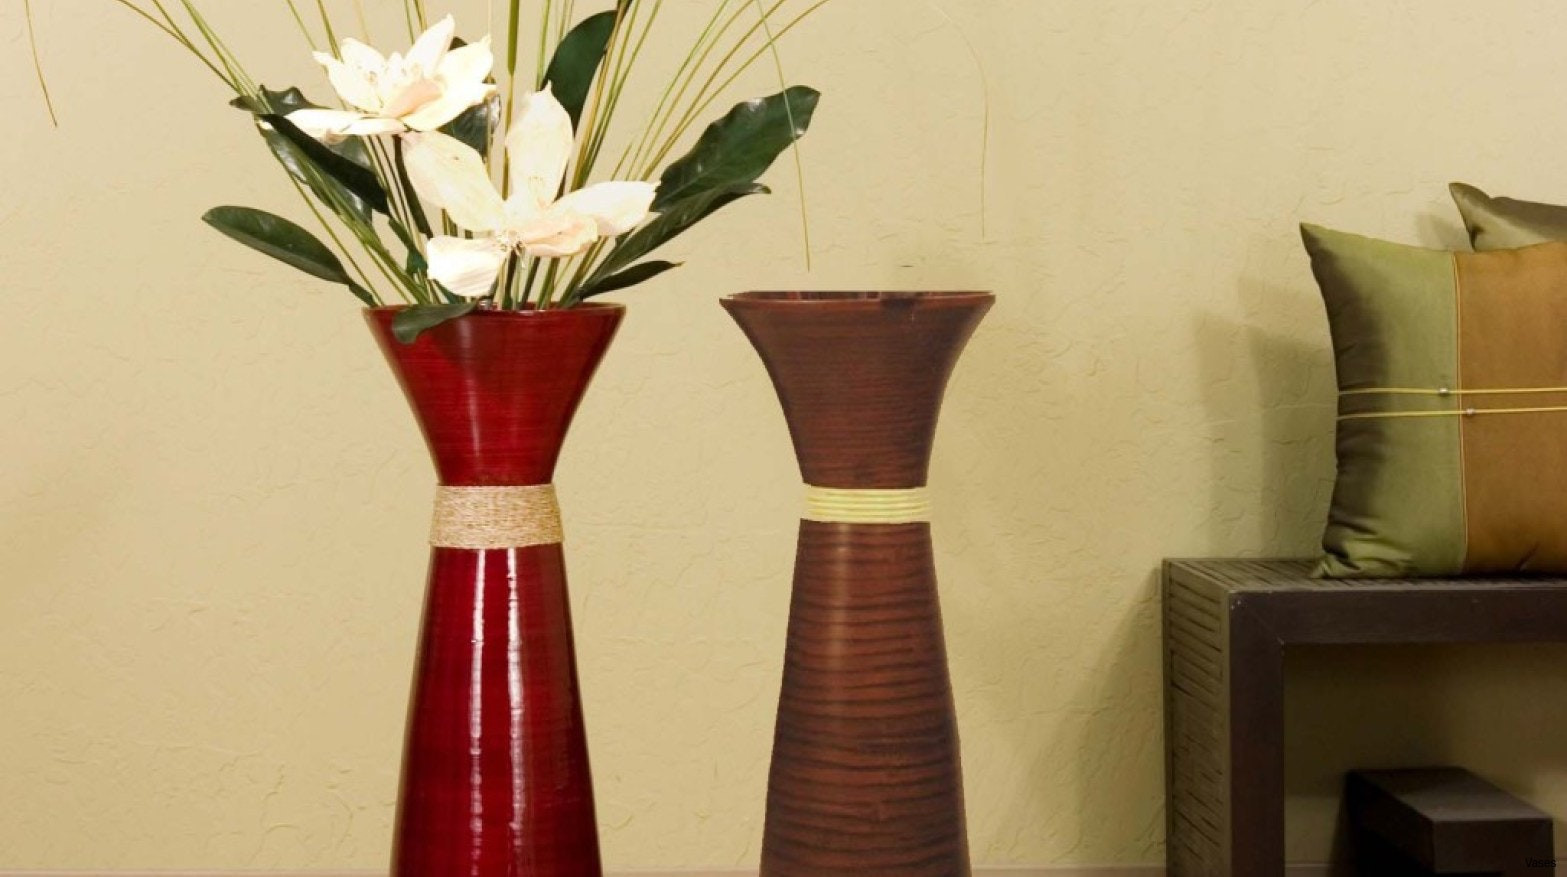 large red floor vase of large wood floor vase collection vases flower floor vase with in large wood floor vase photograph how to fill a planter new floor decor vase tall ideash